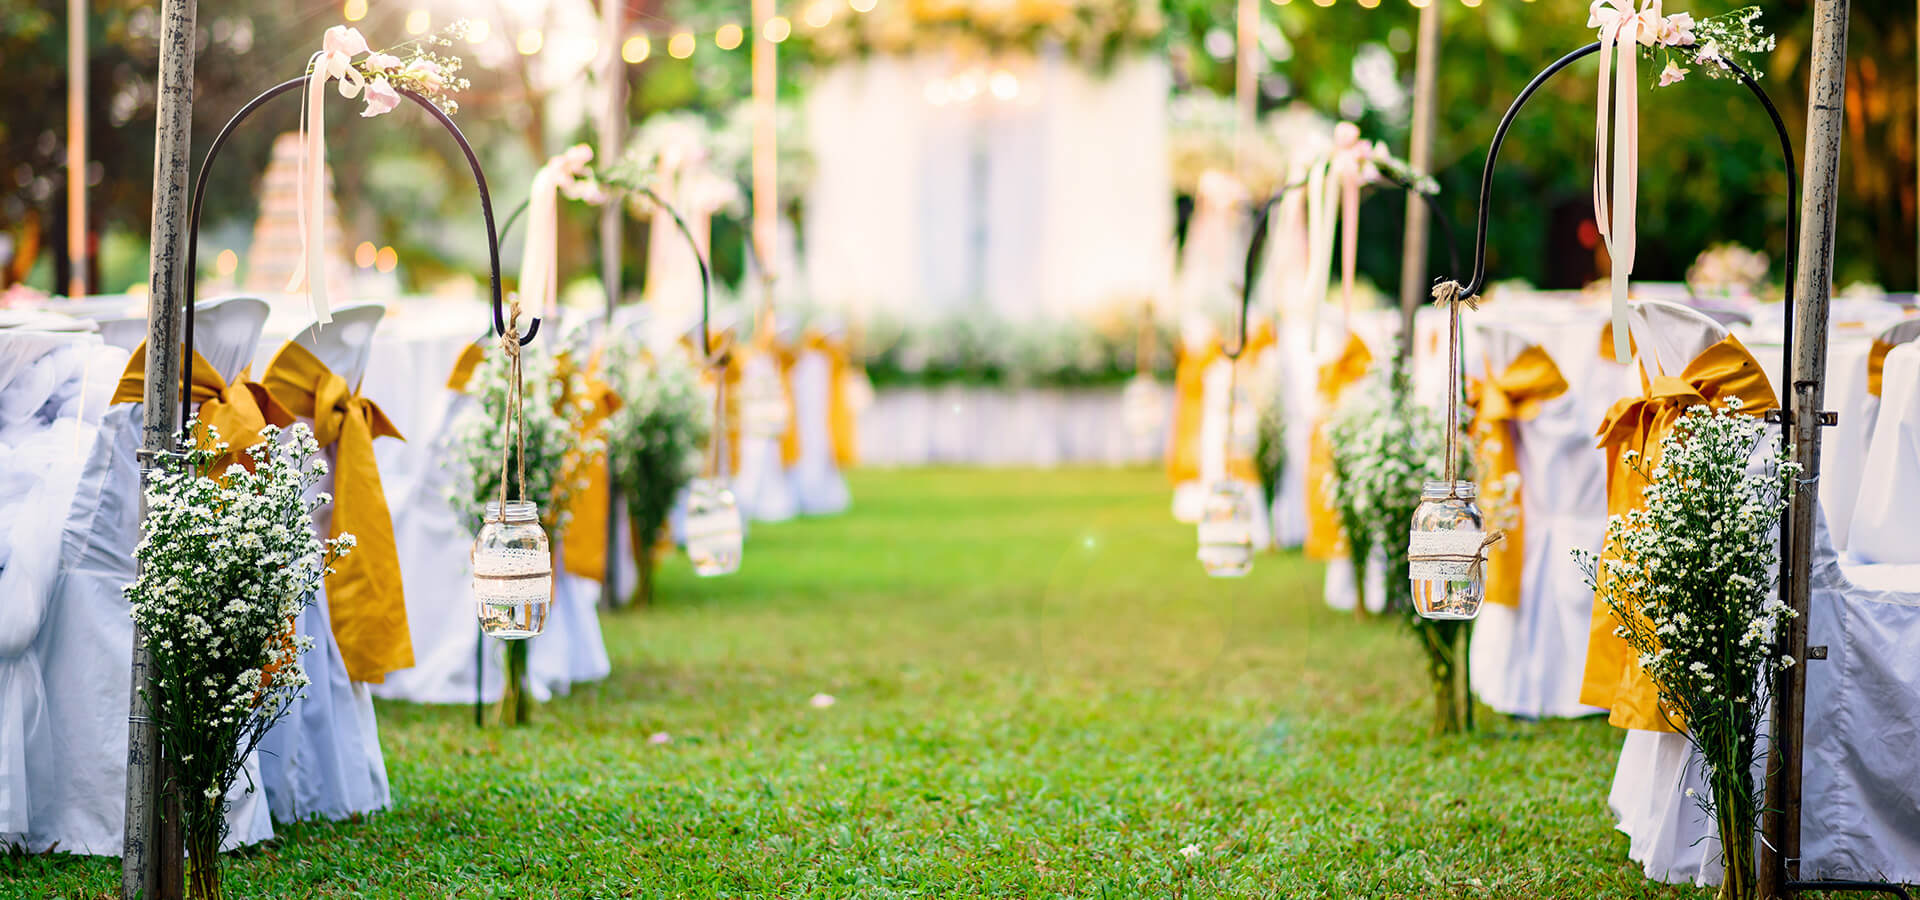 Wedding a base di piccole delizie